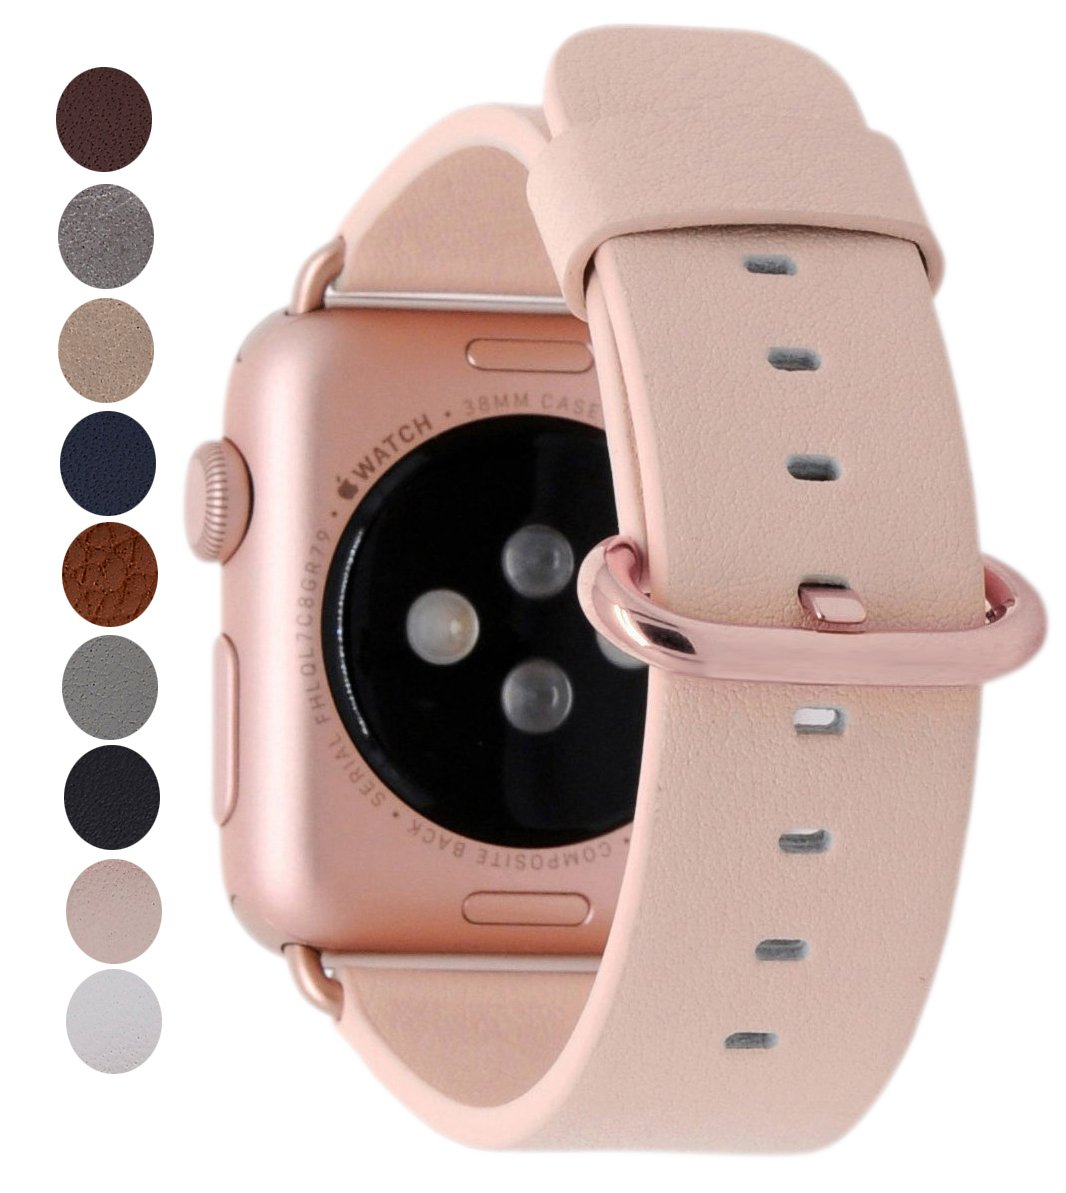 JSGJMY Apple Watch Band 42mm Women Genuine Leather Loop with Rose Gold Metal Clasp for Apple Watch Series 3/Series 2/Series 1/Edition/Sport(Soft Pink+Rose Gold Buckle)